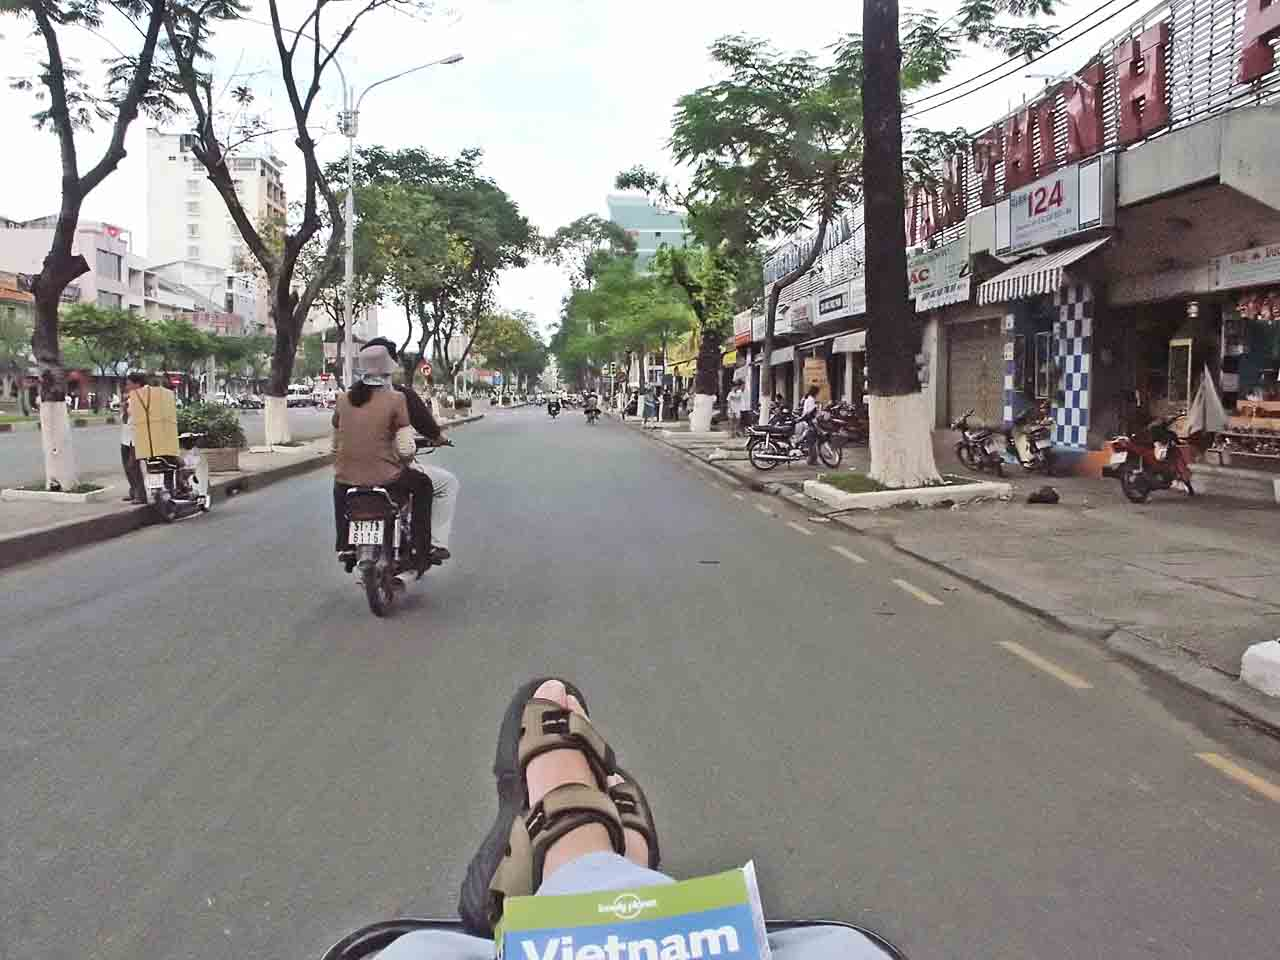 Travelling in style in Saigon